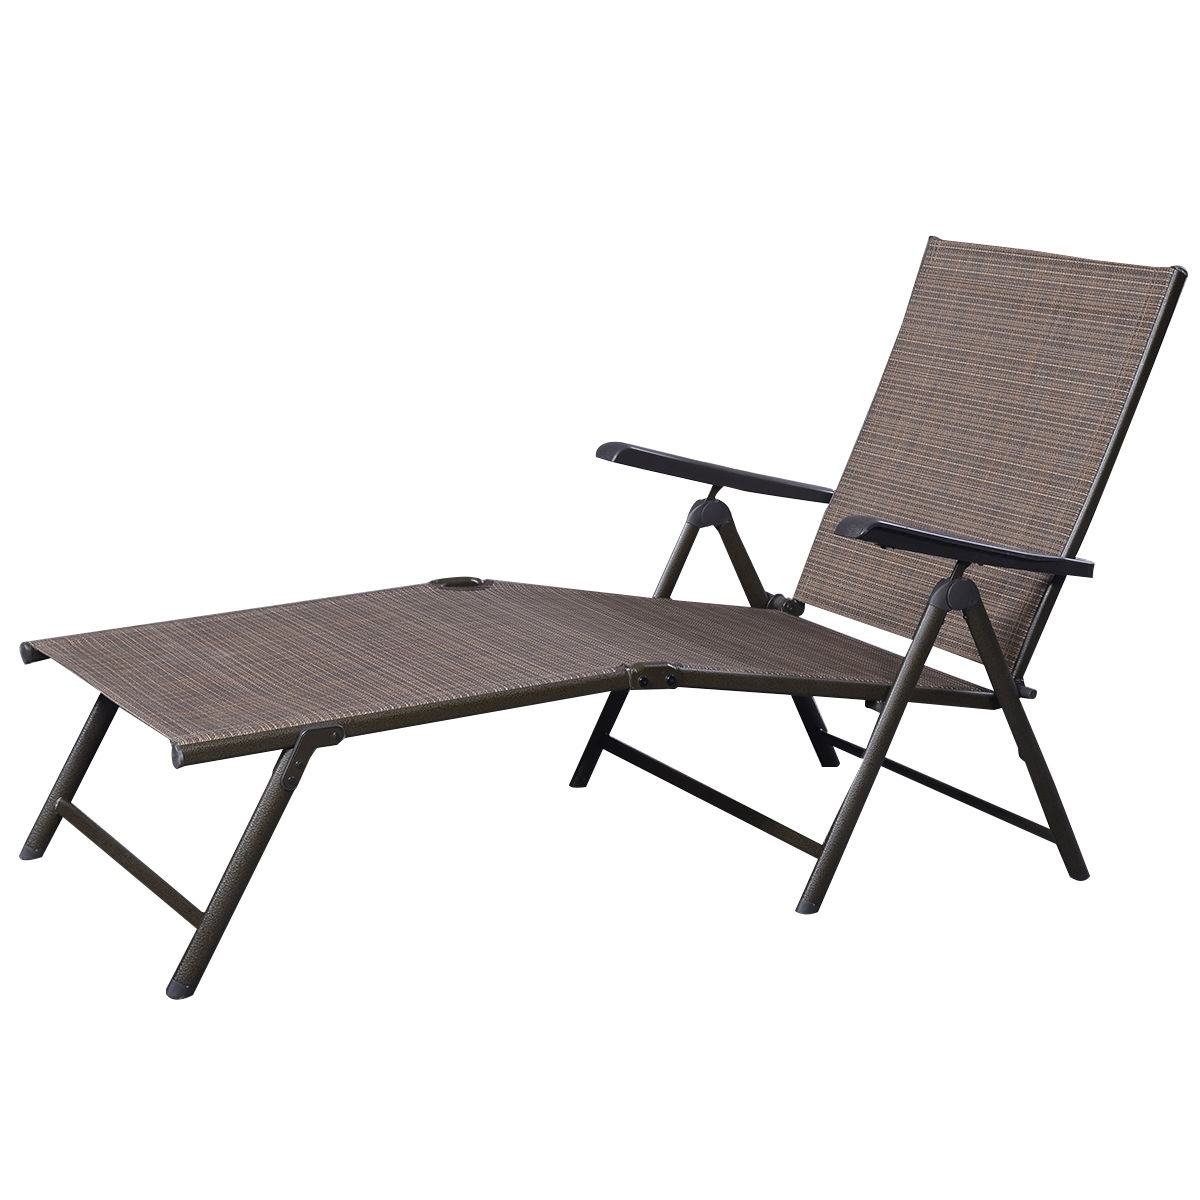 Most Popular Outdoor Adjustable Chaise Lounge Chair – Sunloungers – Outdoor Pertaining To Chaise Lounge Chairs For Outdoors (View 7 of 15)